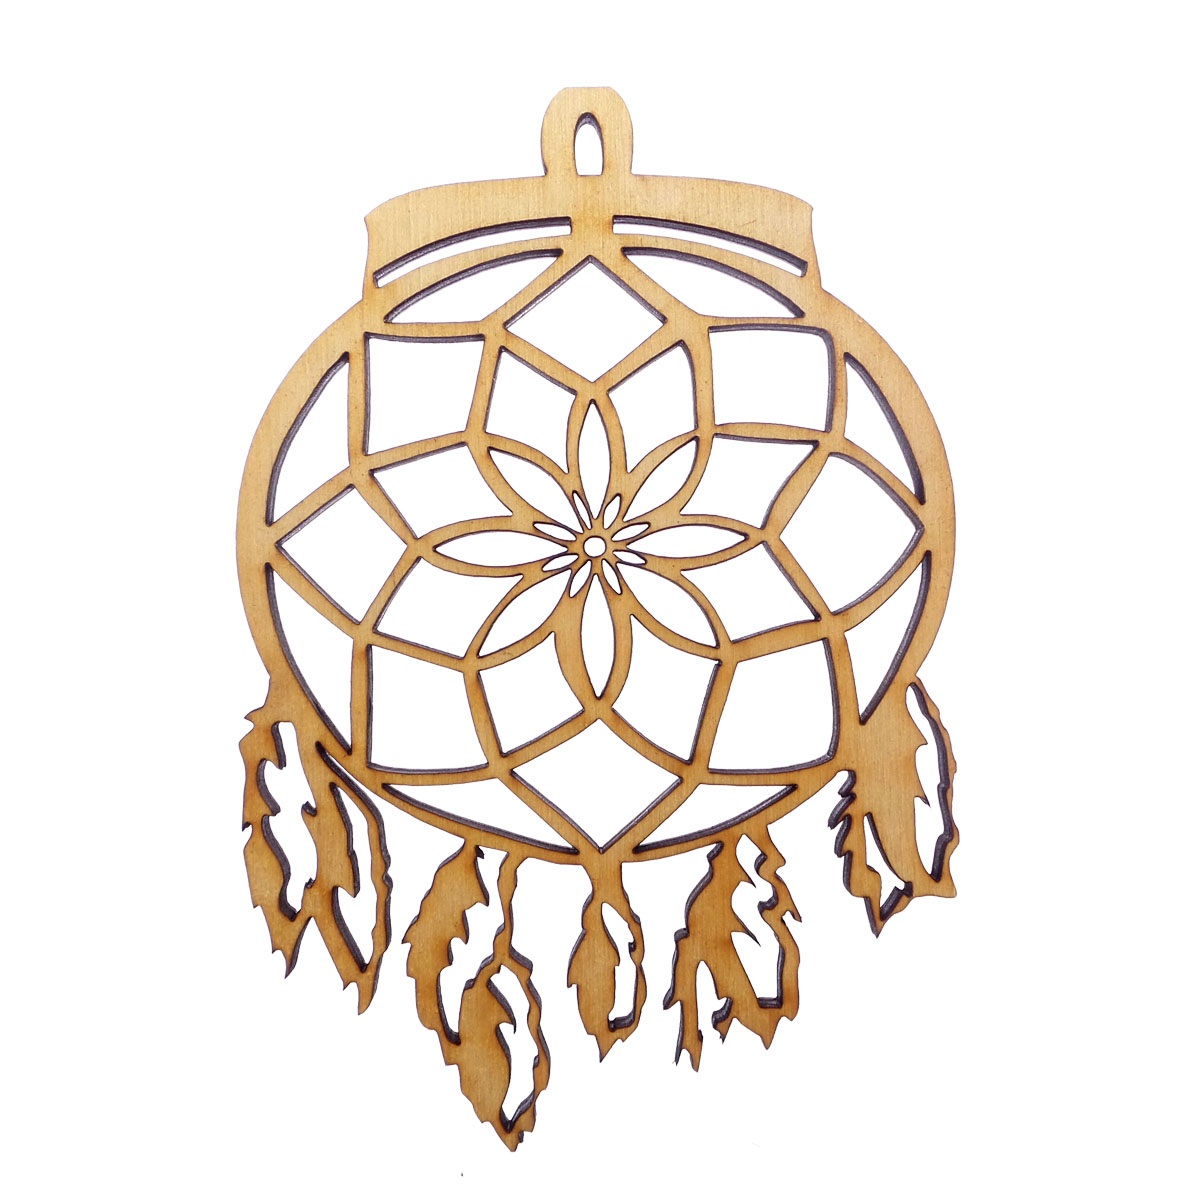 Personalized Dream Catcher Ornament